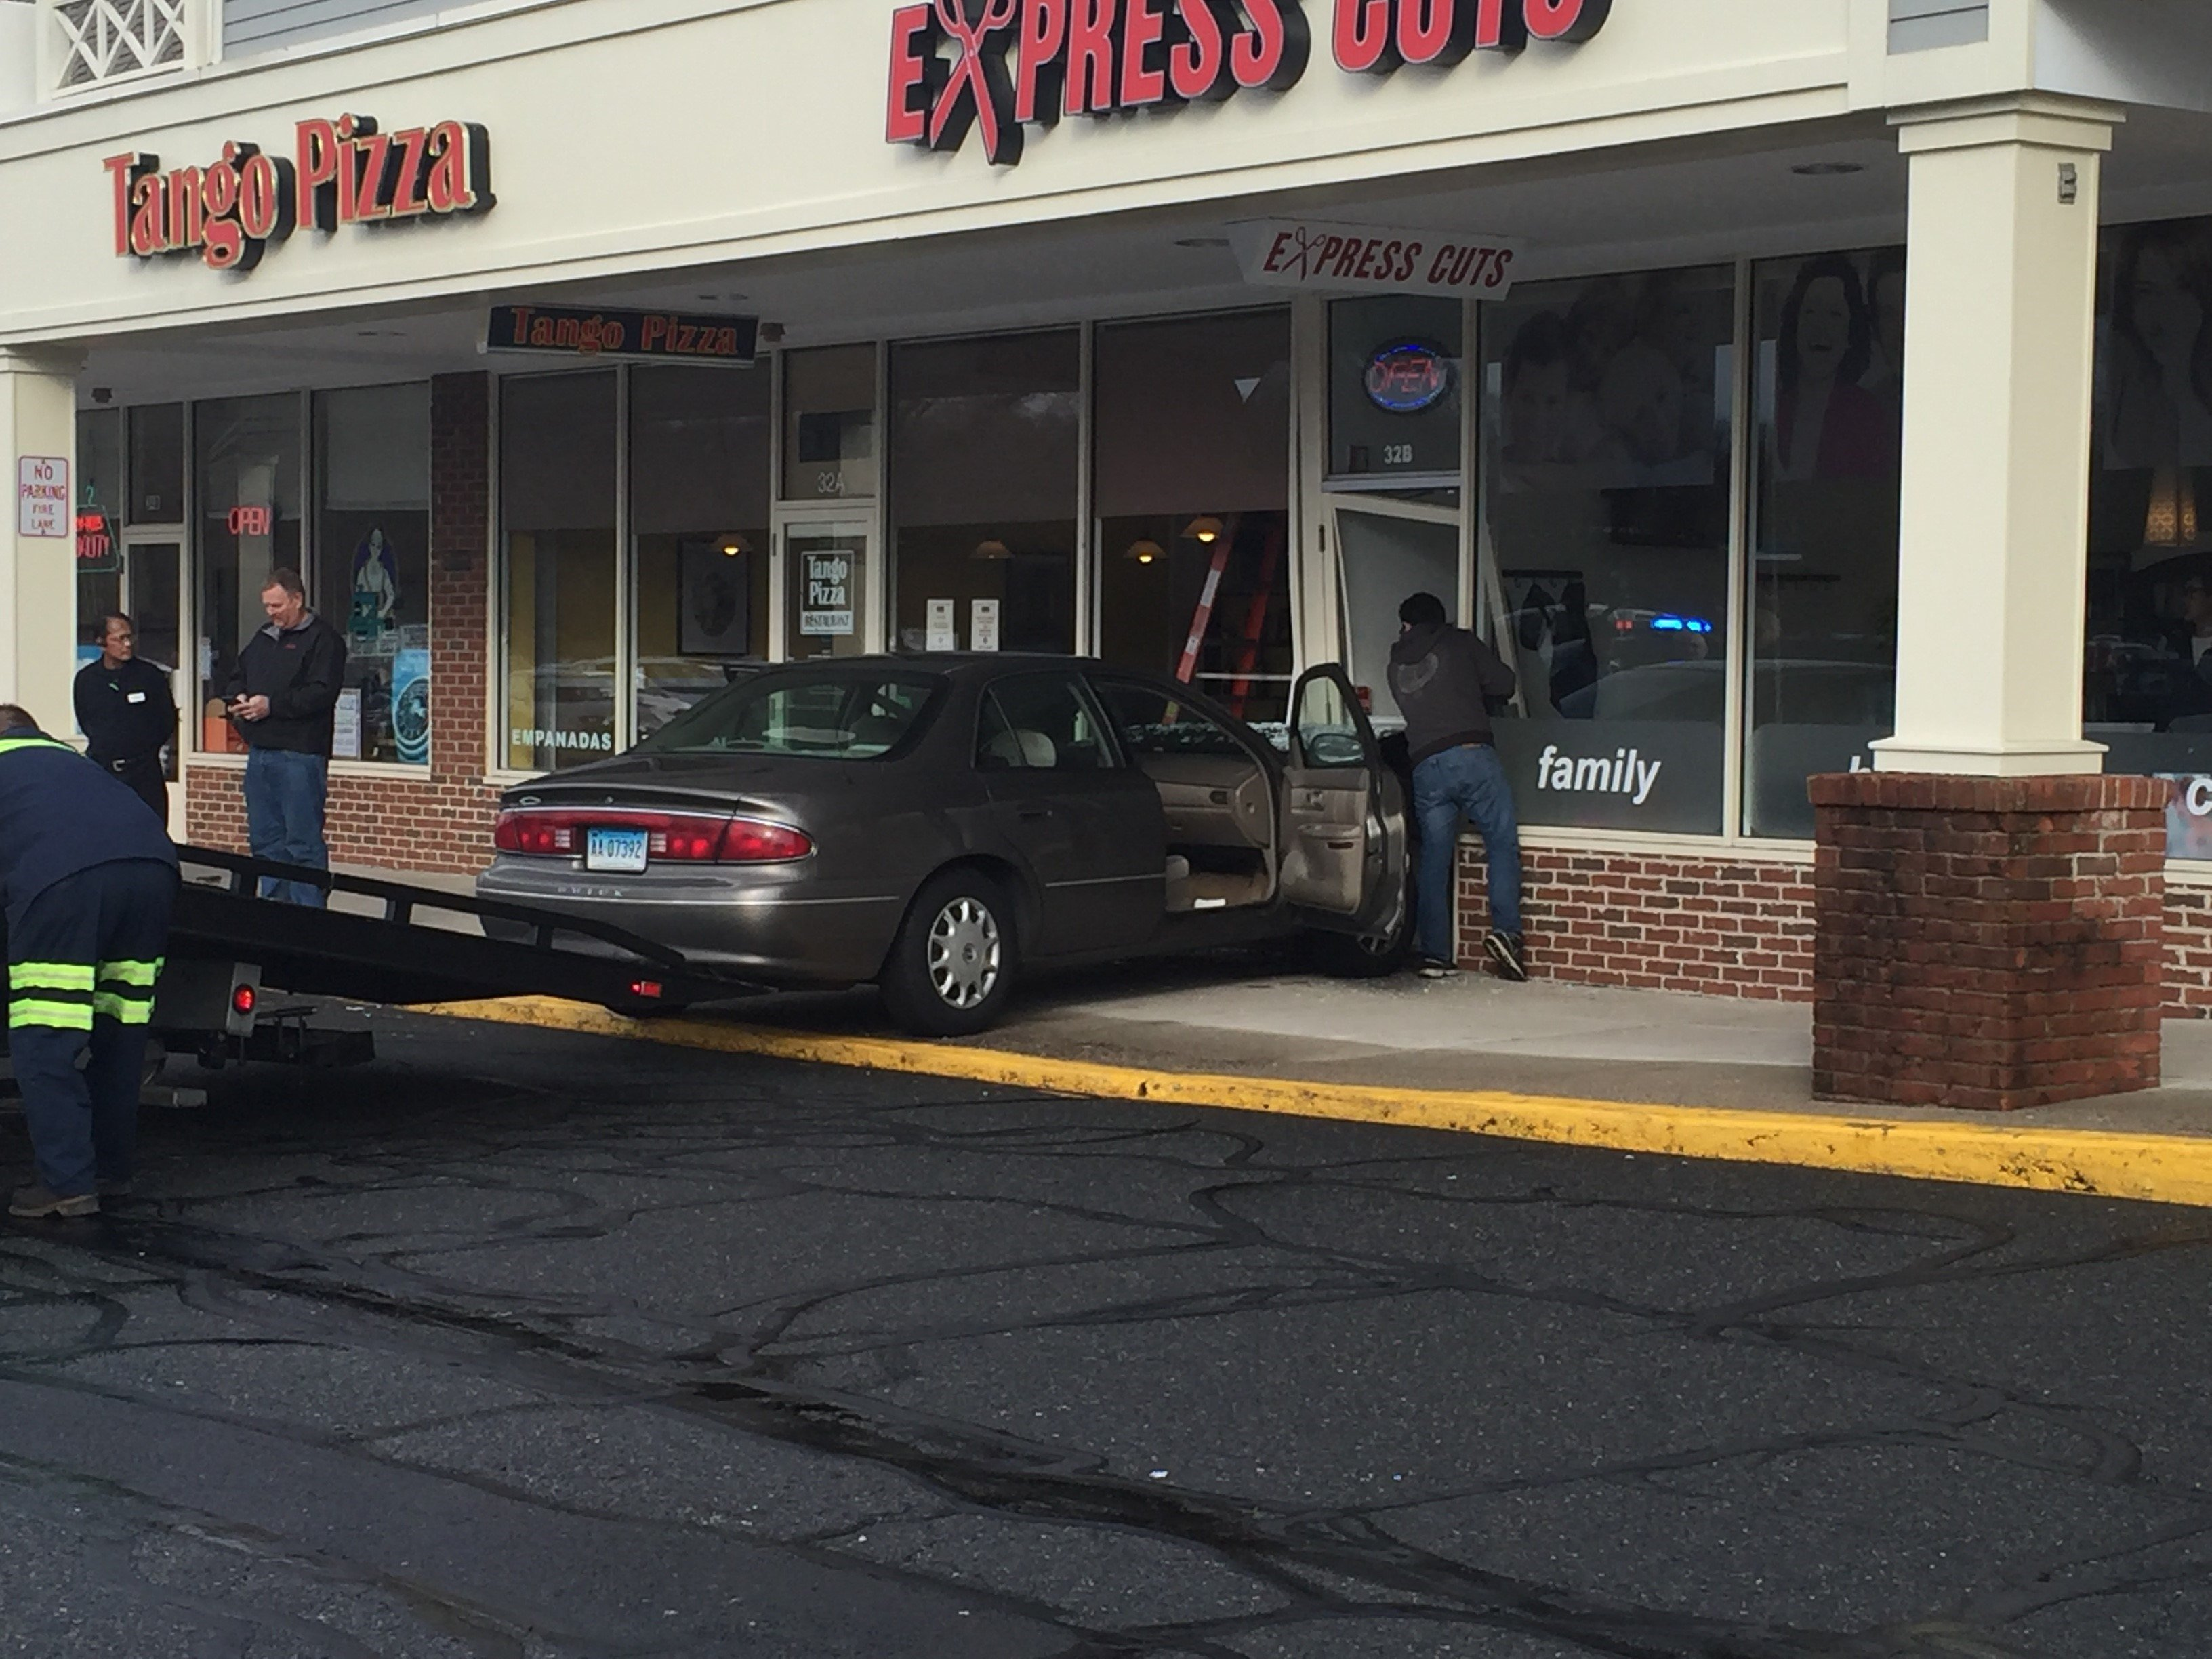 Police in Newington are investigating after a person drove into a building on Fenn Road on Monday afternoon. (WFSB)